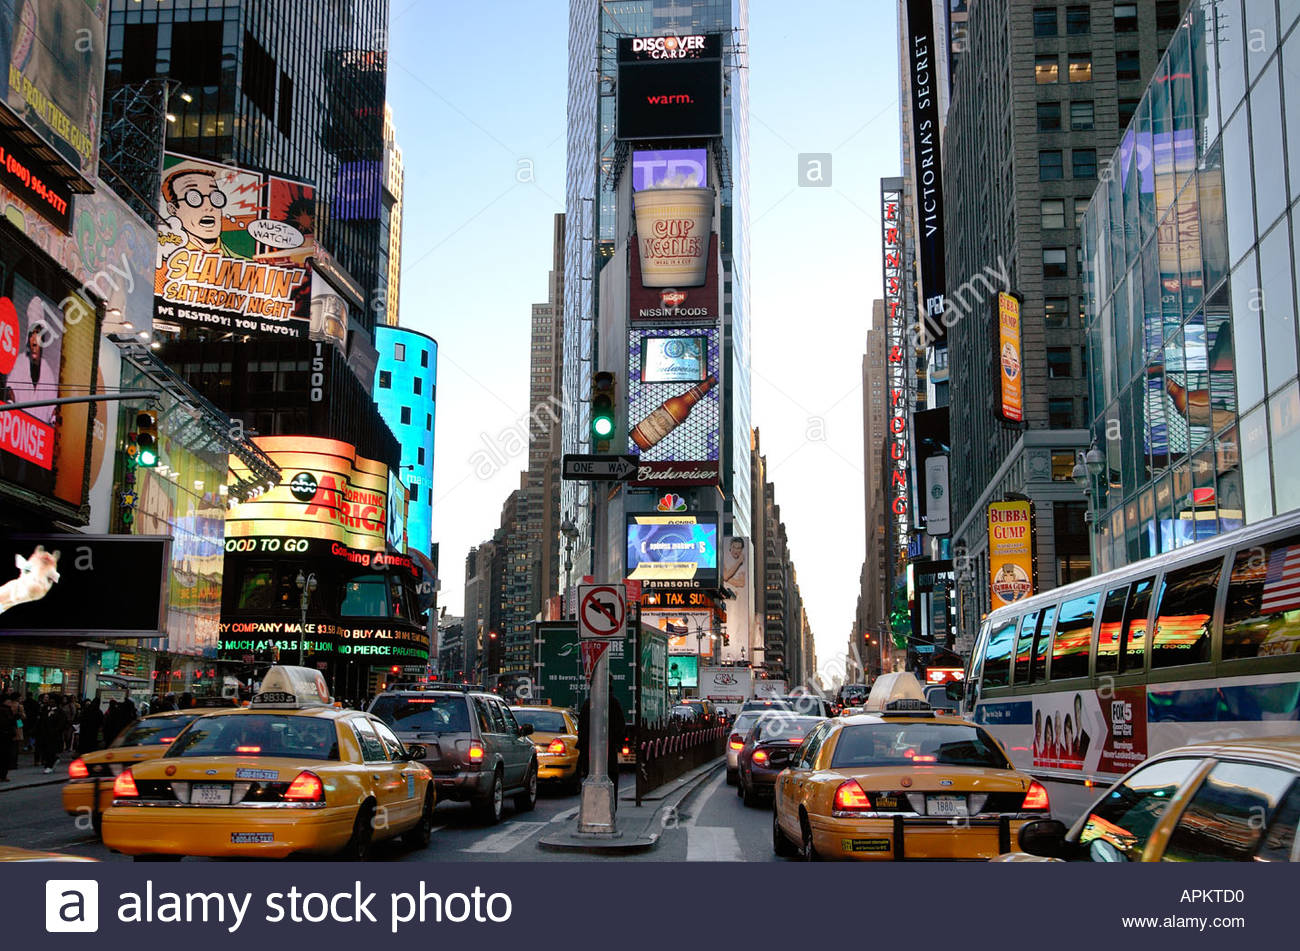 Times Square and traffic. (NYC, New York, USA) - Stock Image